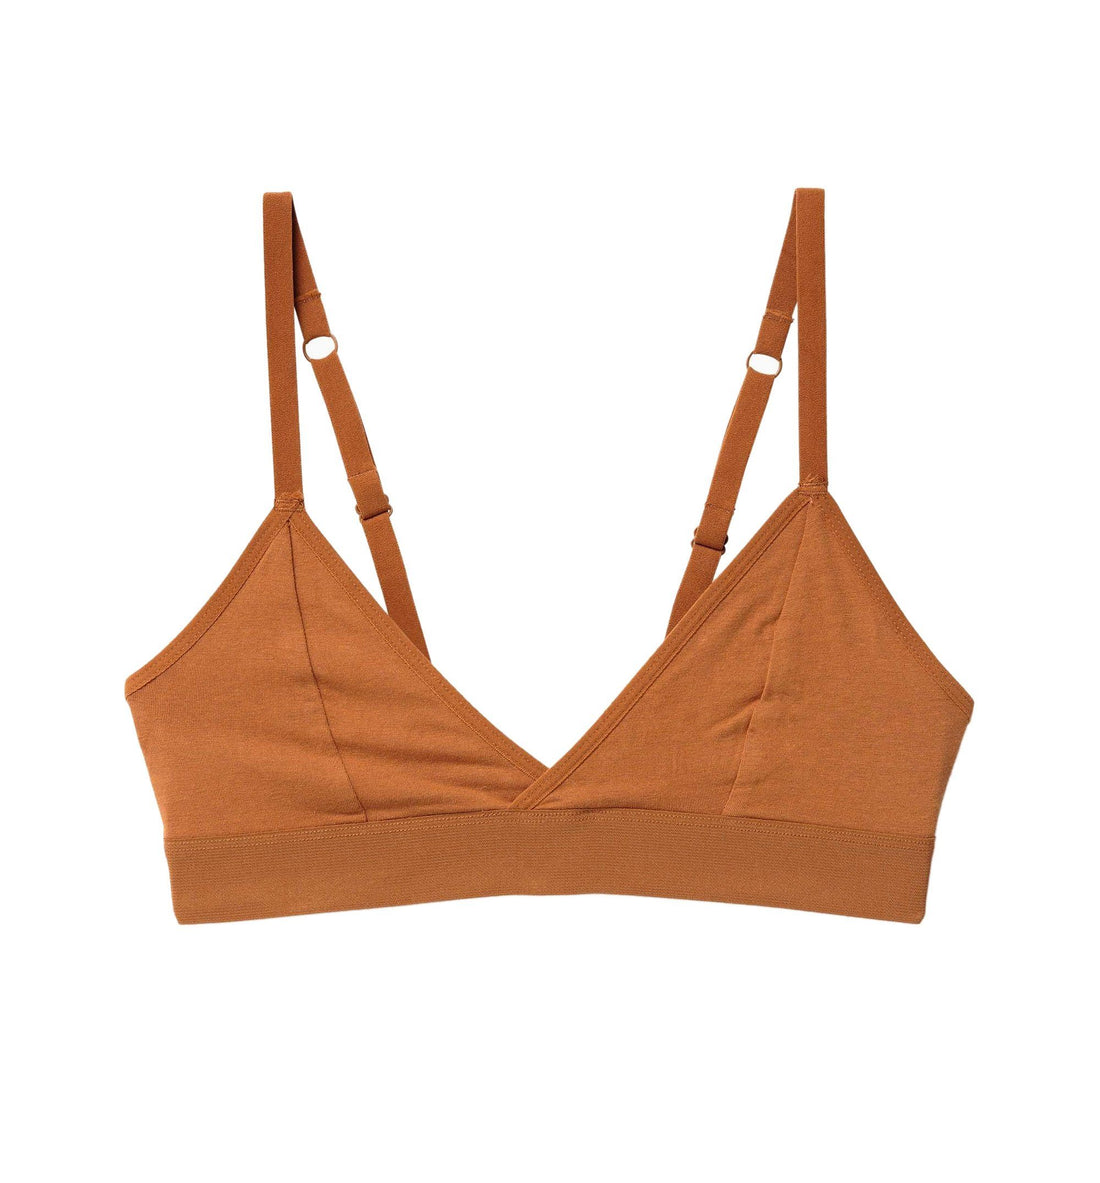 Richer Poorer Inc The Bralette - Tops - Iron and Resin